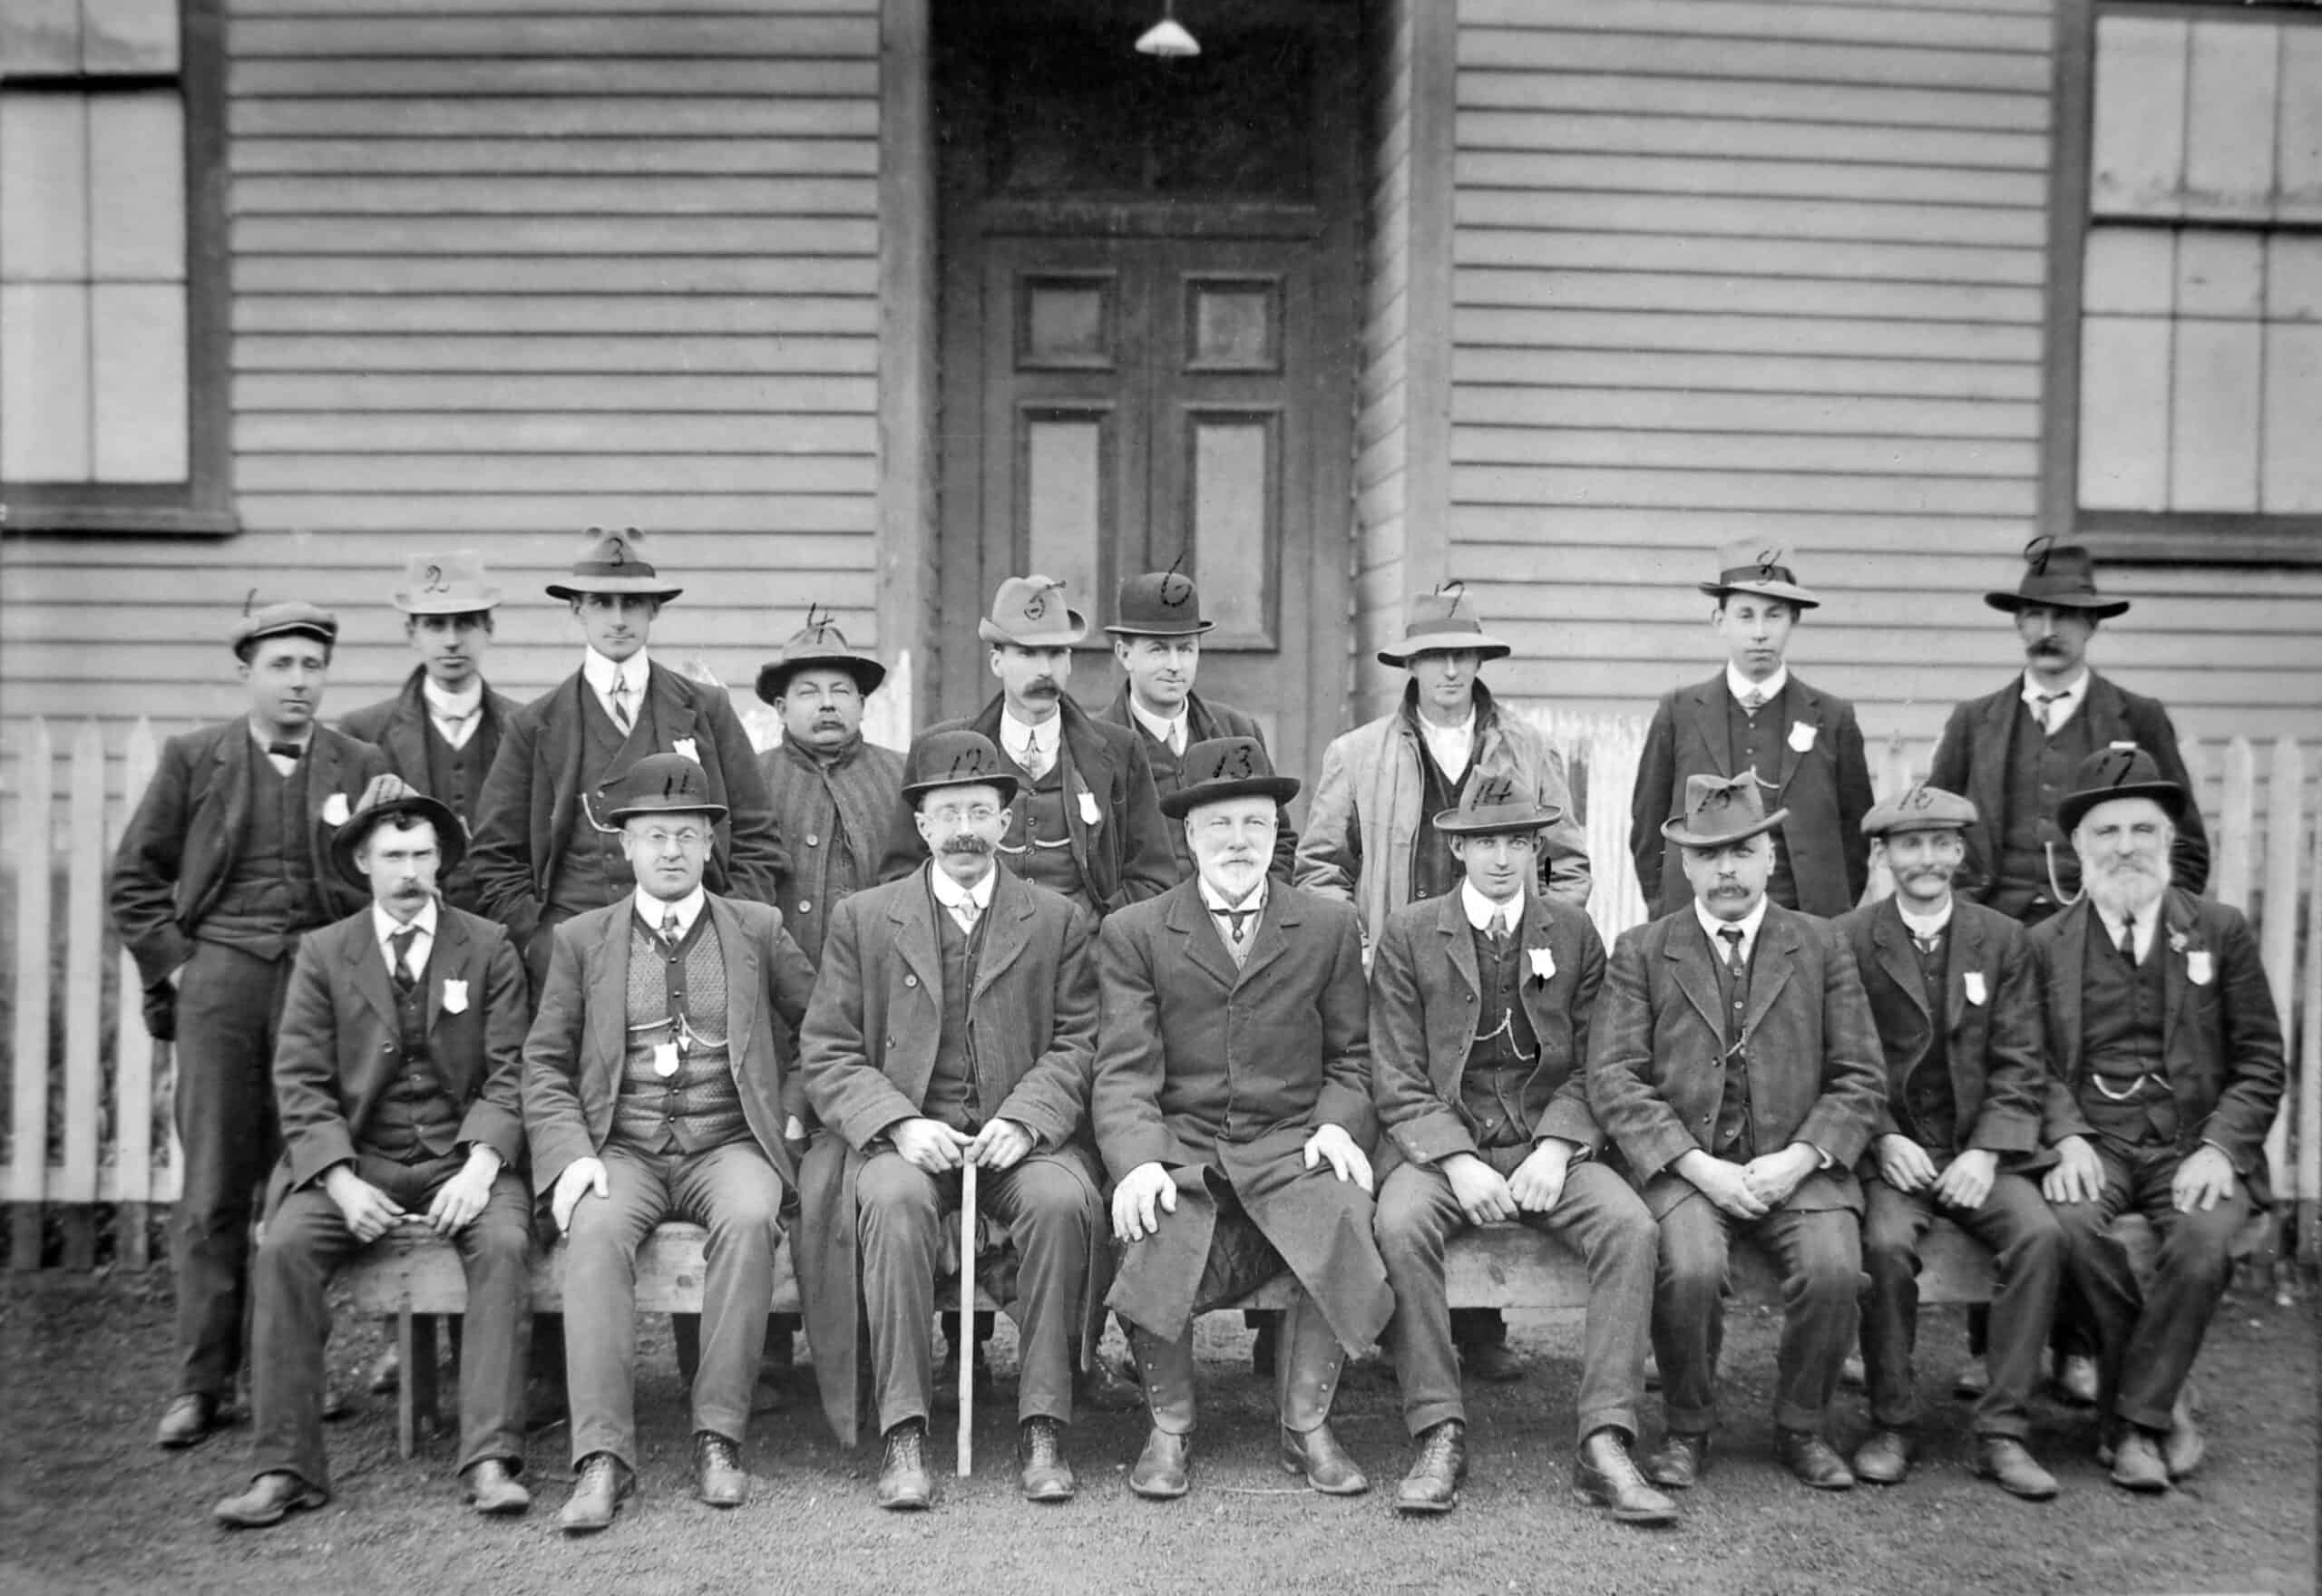 Temperance Society Committee. Article by Maree Belyea in October 2020 CDHS Newsletter - Every Picture Tells a Story.